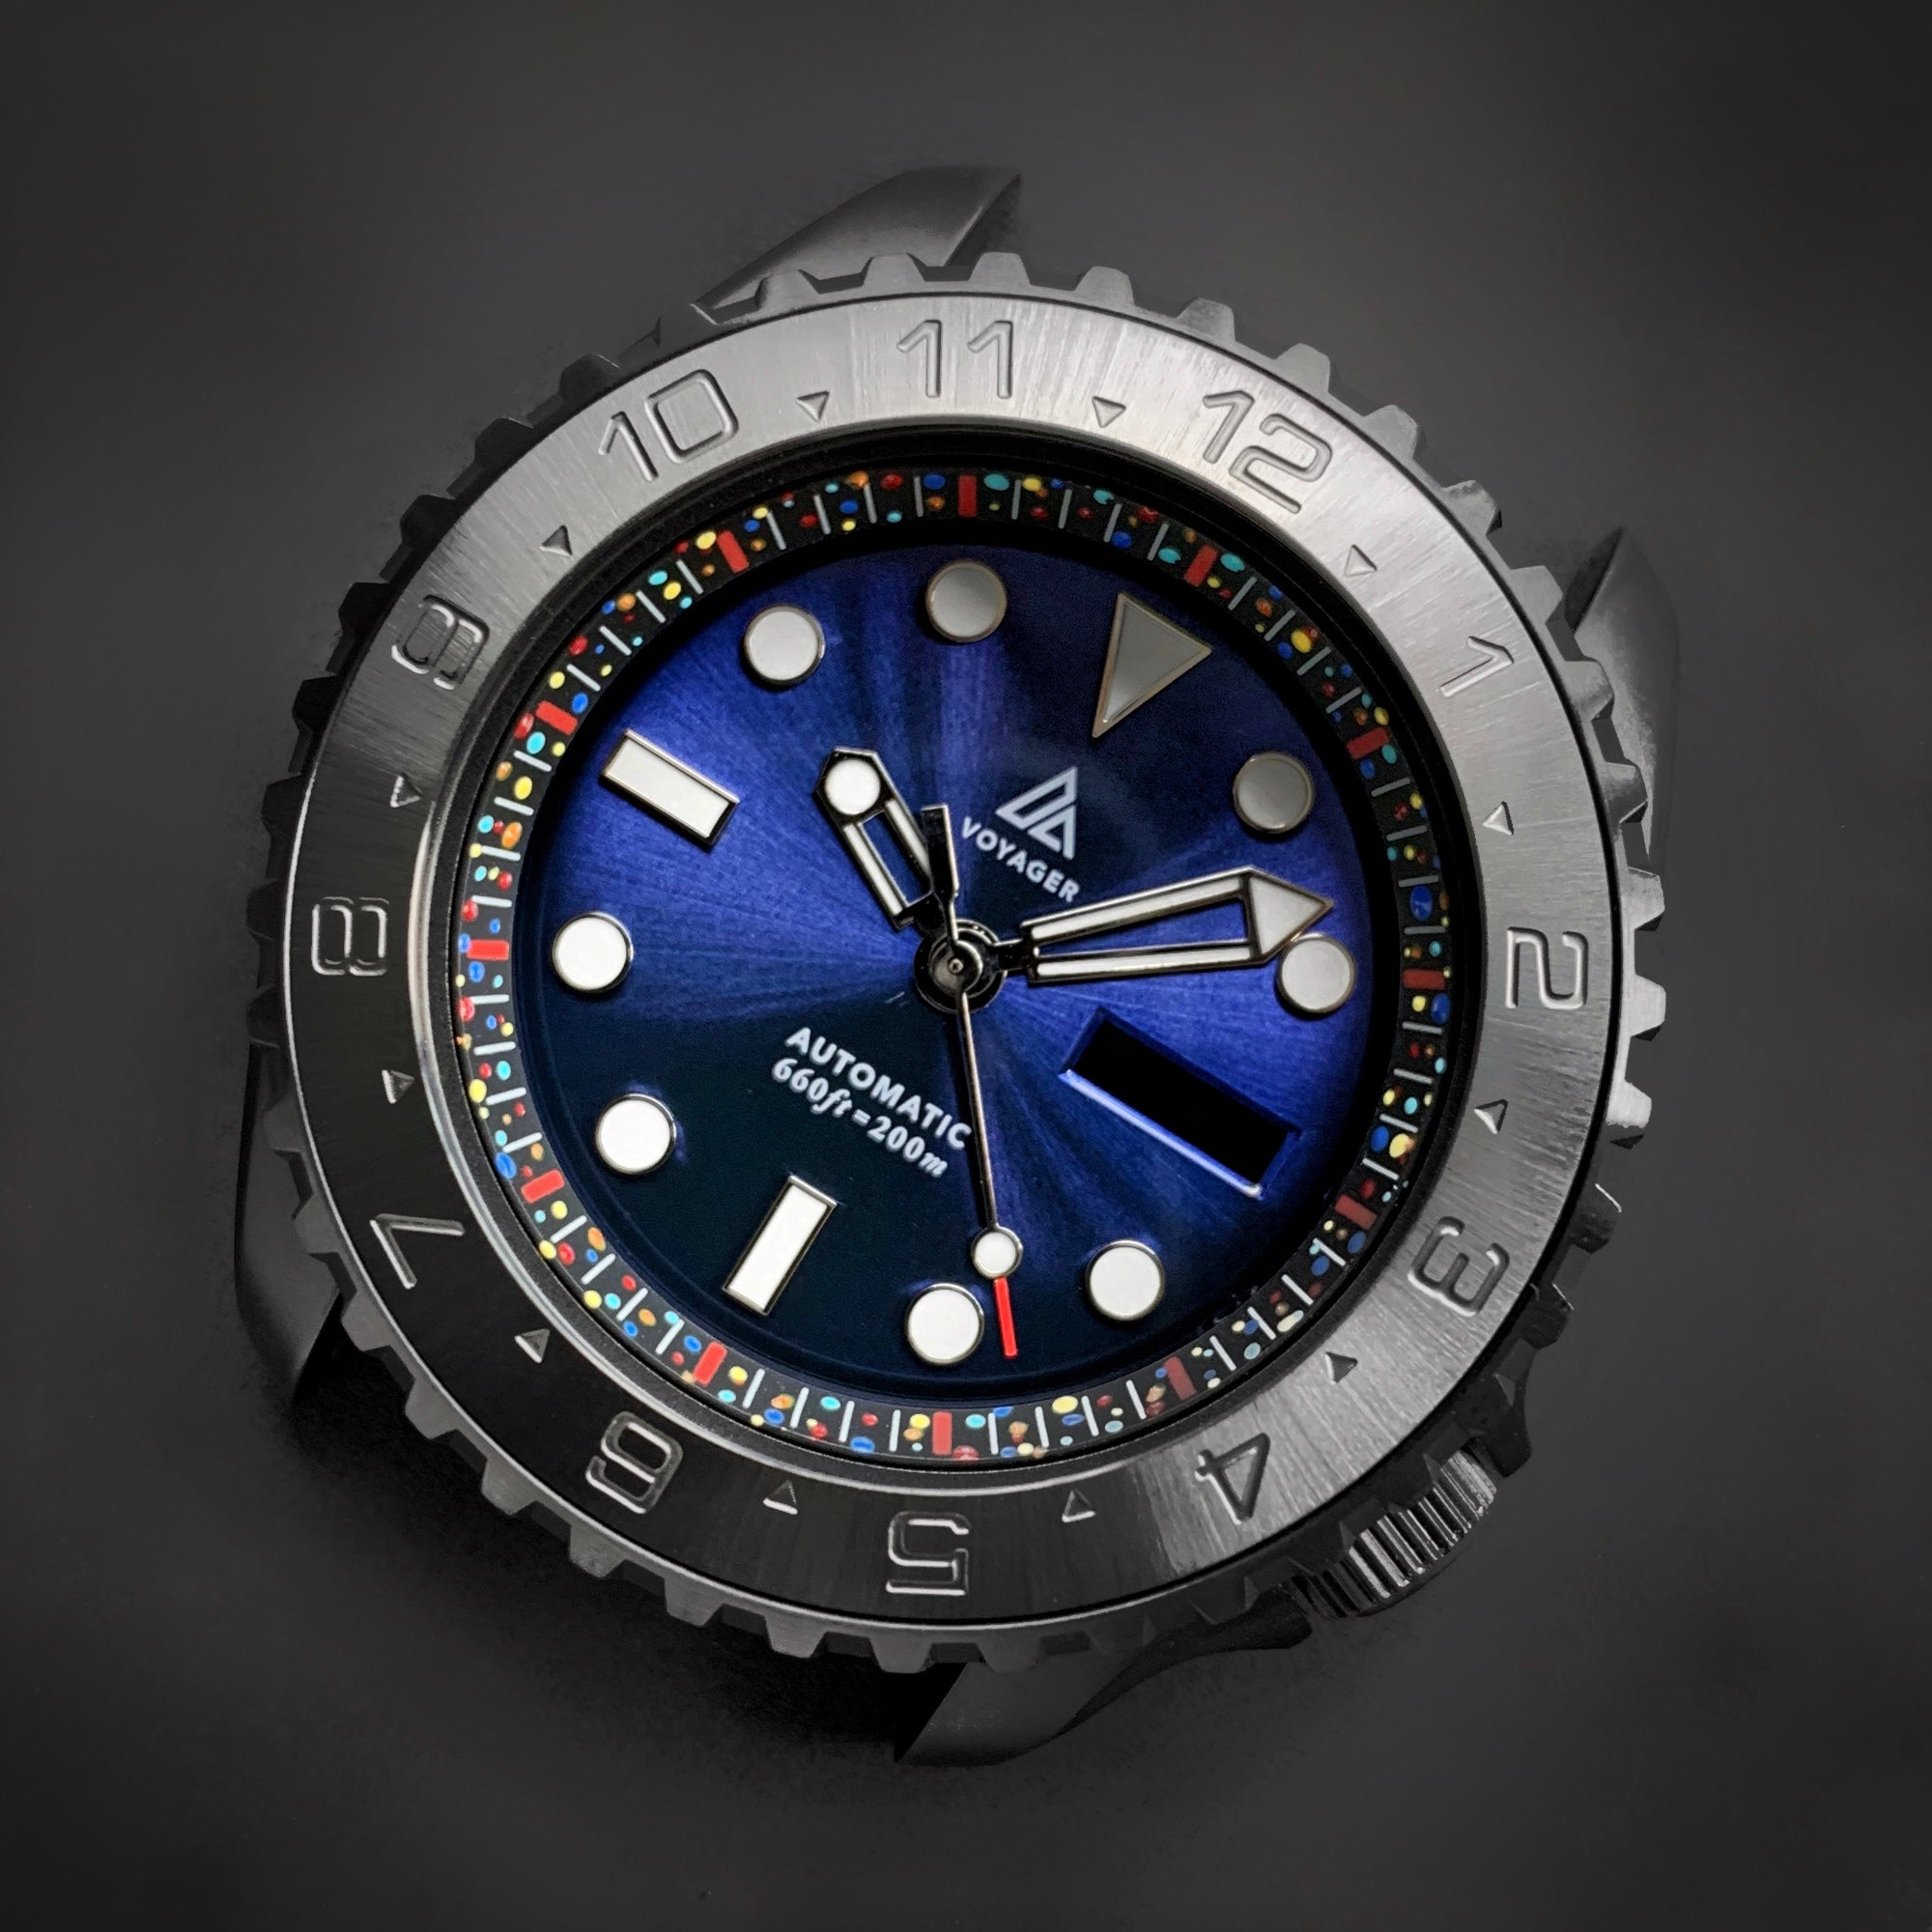 C.R. - SKX007 - Hand Painted Series - Specks (Markers)